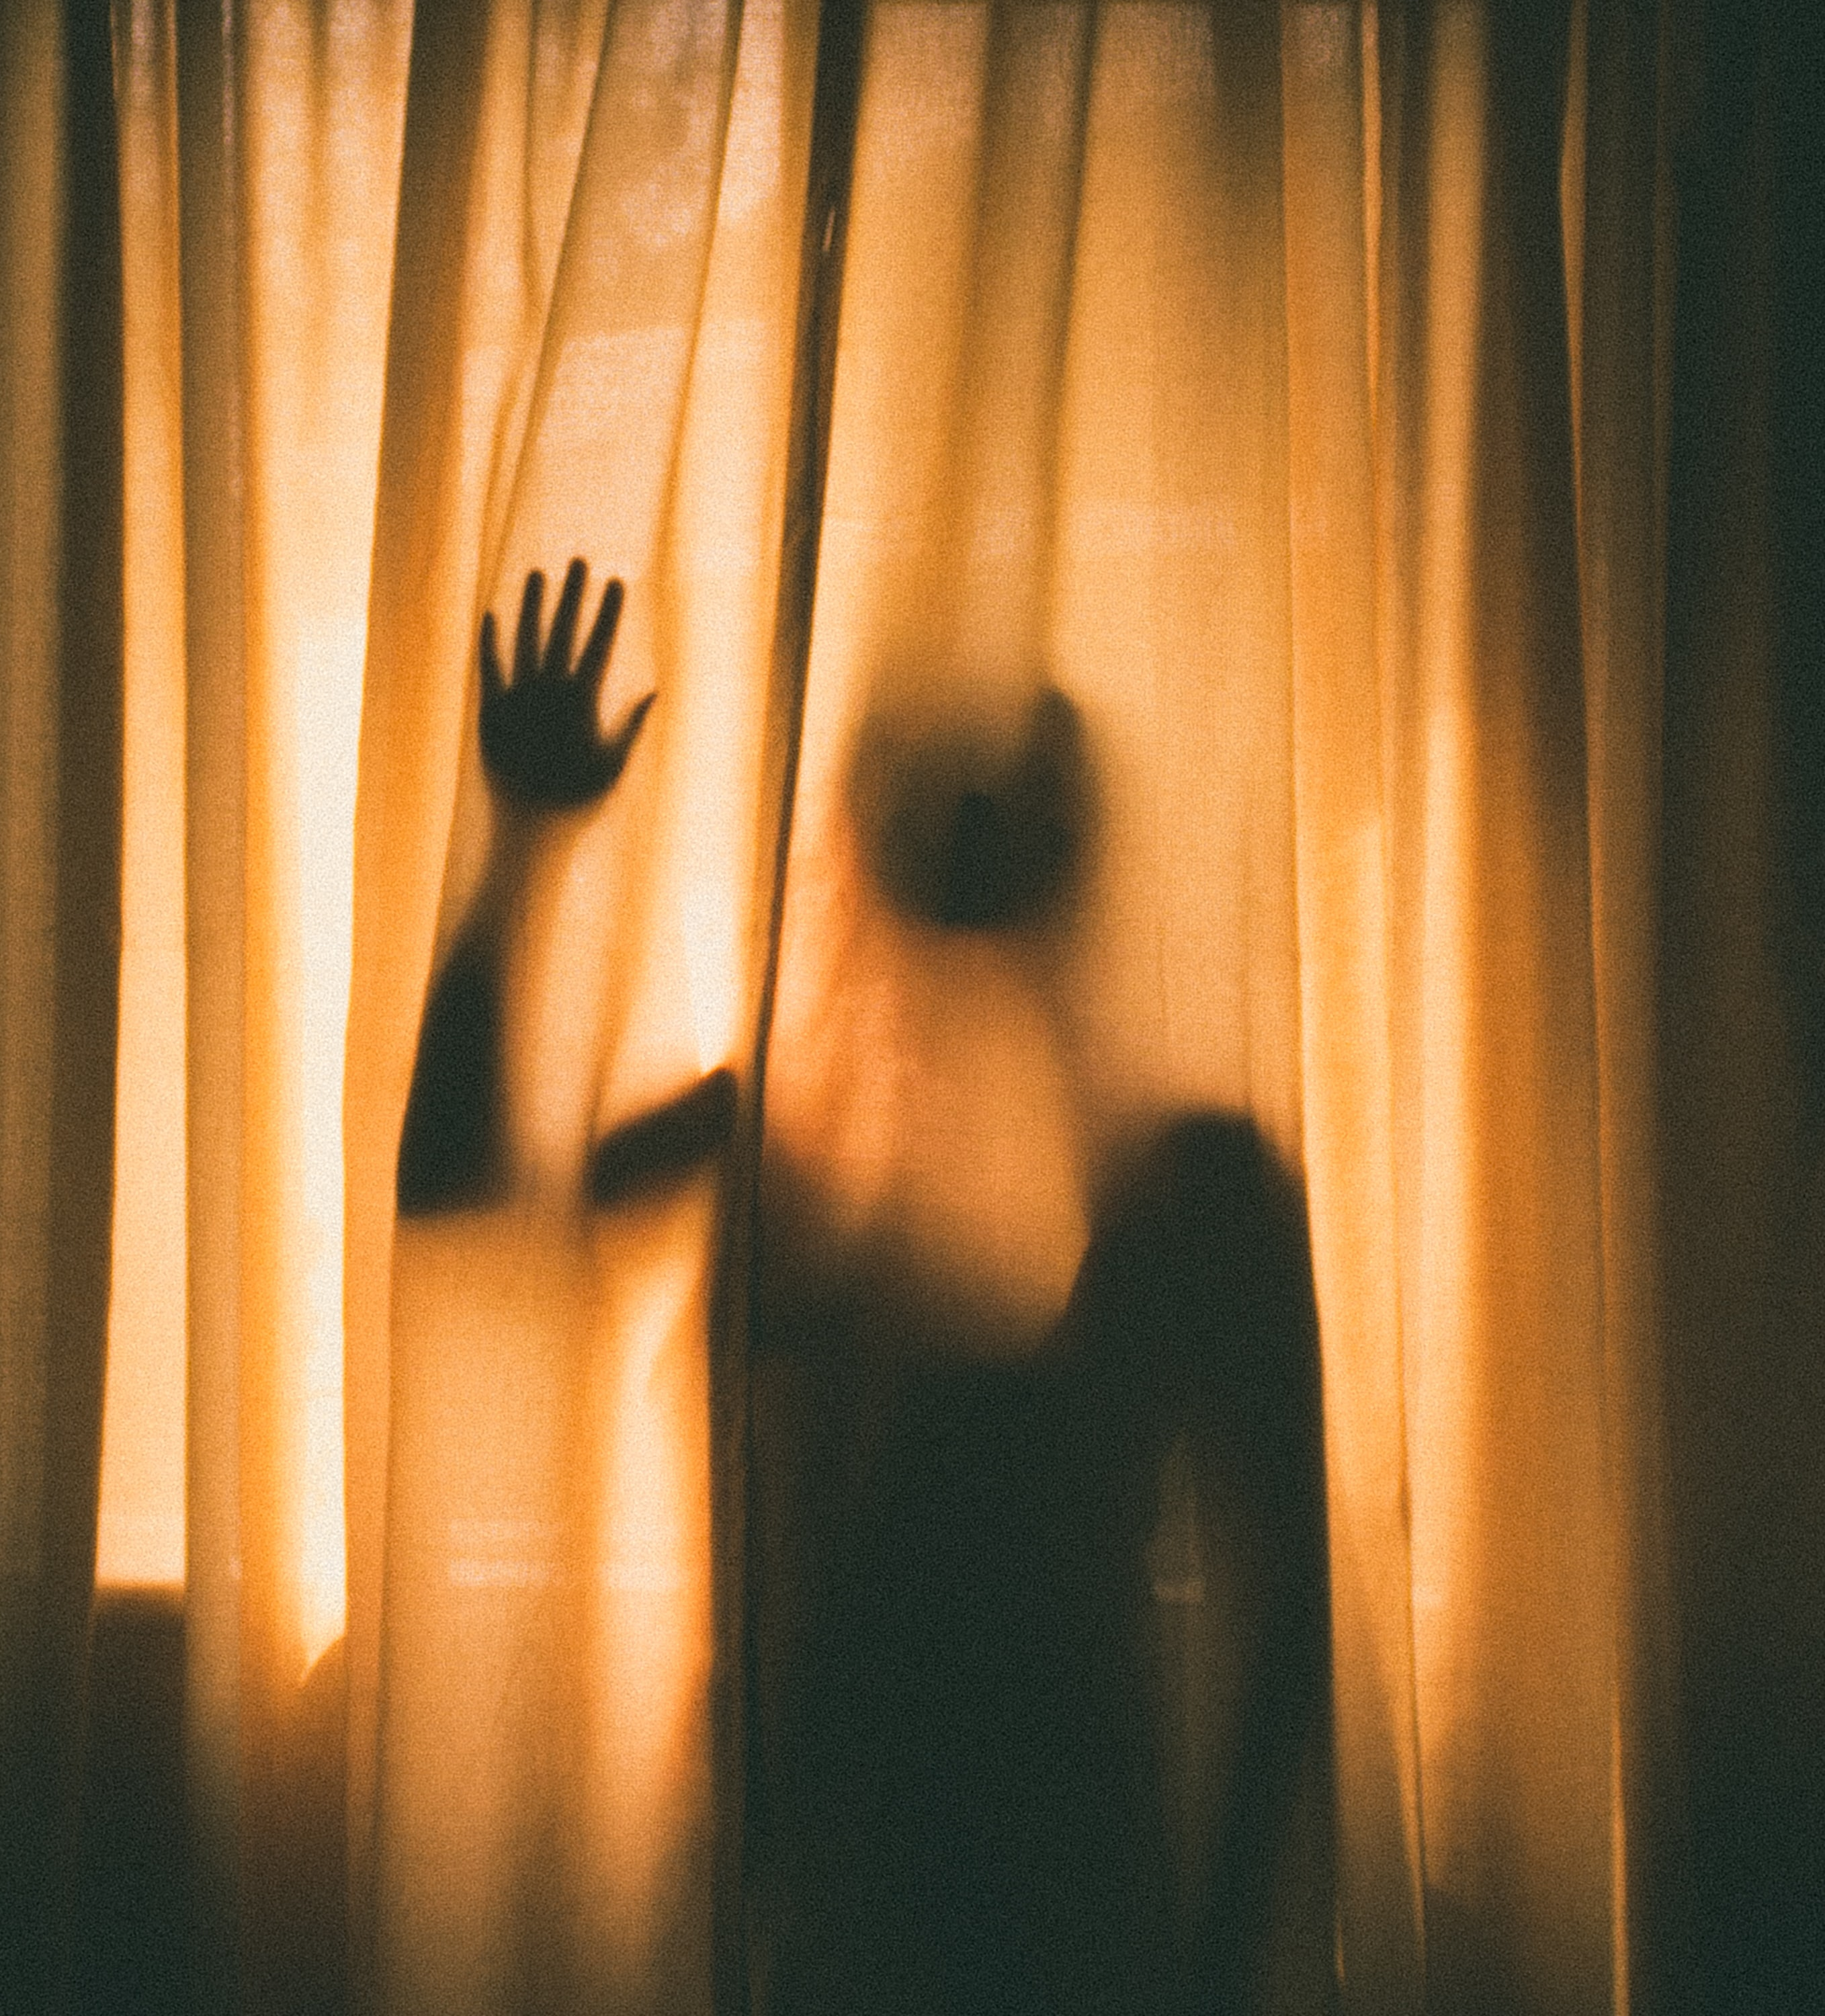 woman hiding behind of curtain